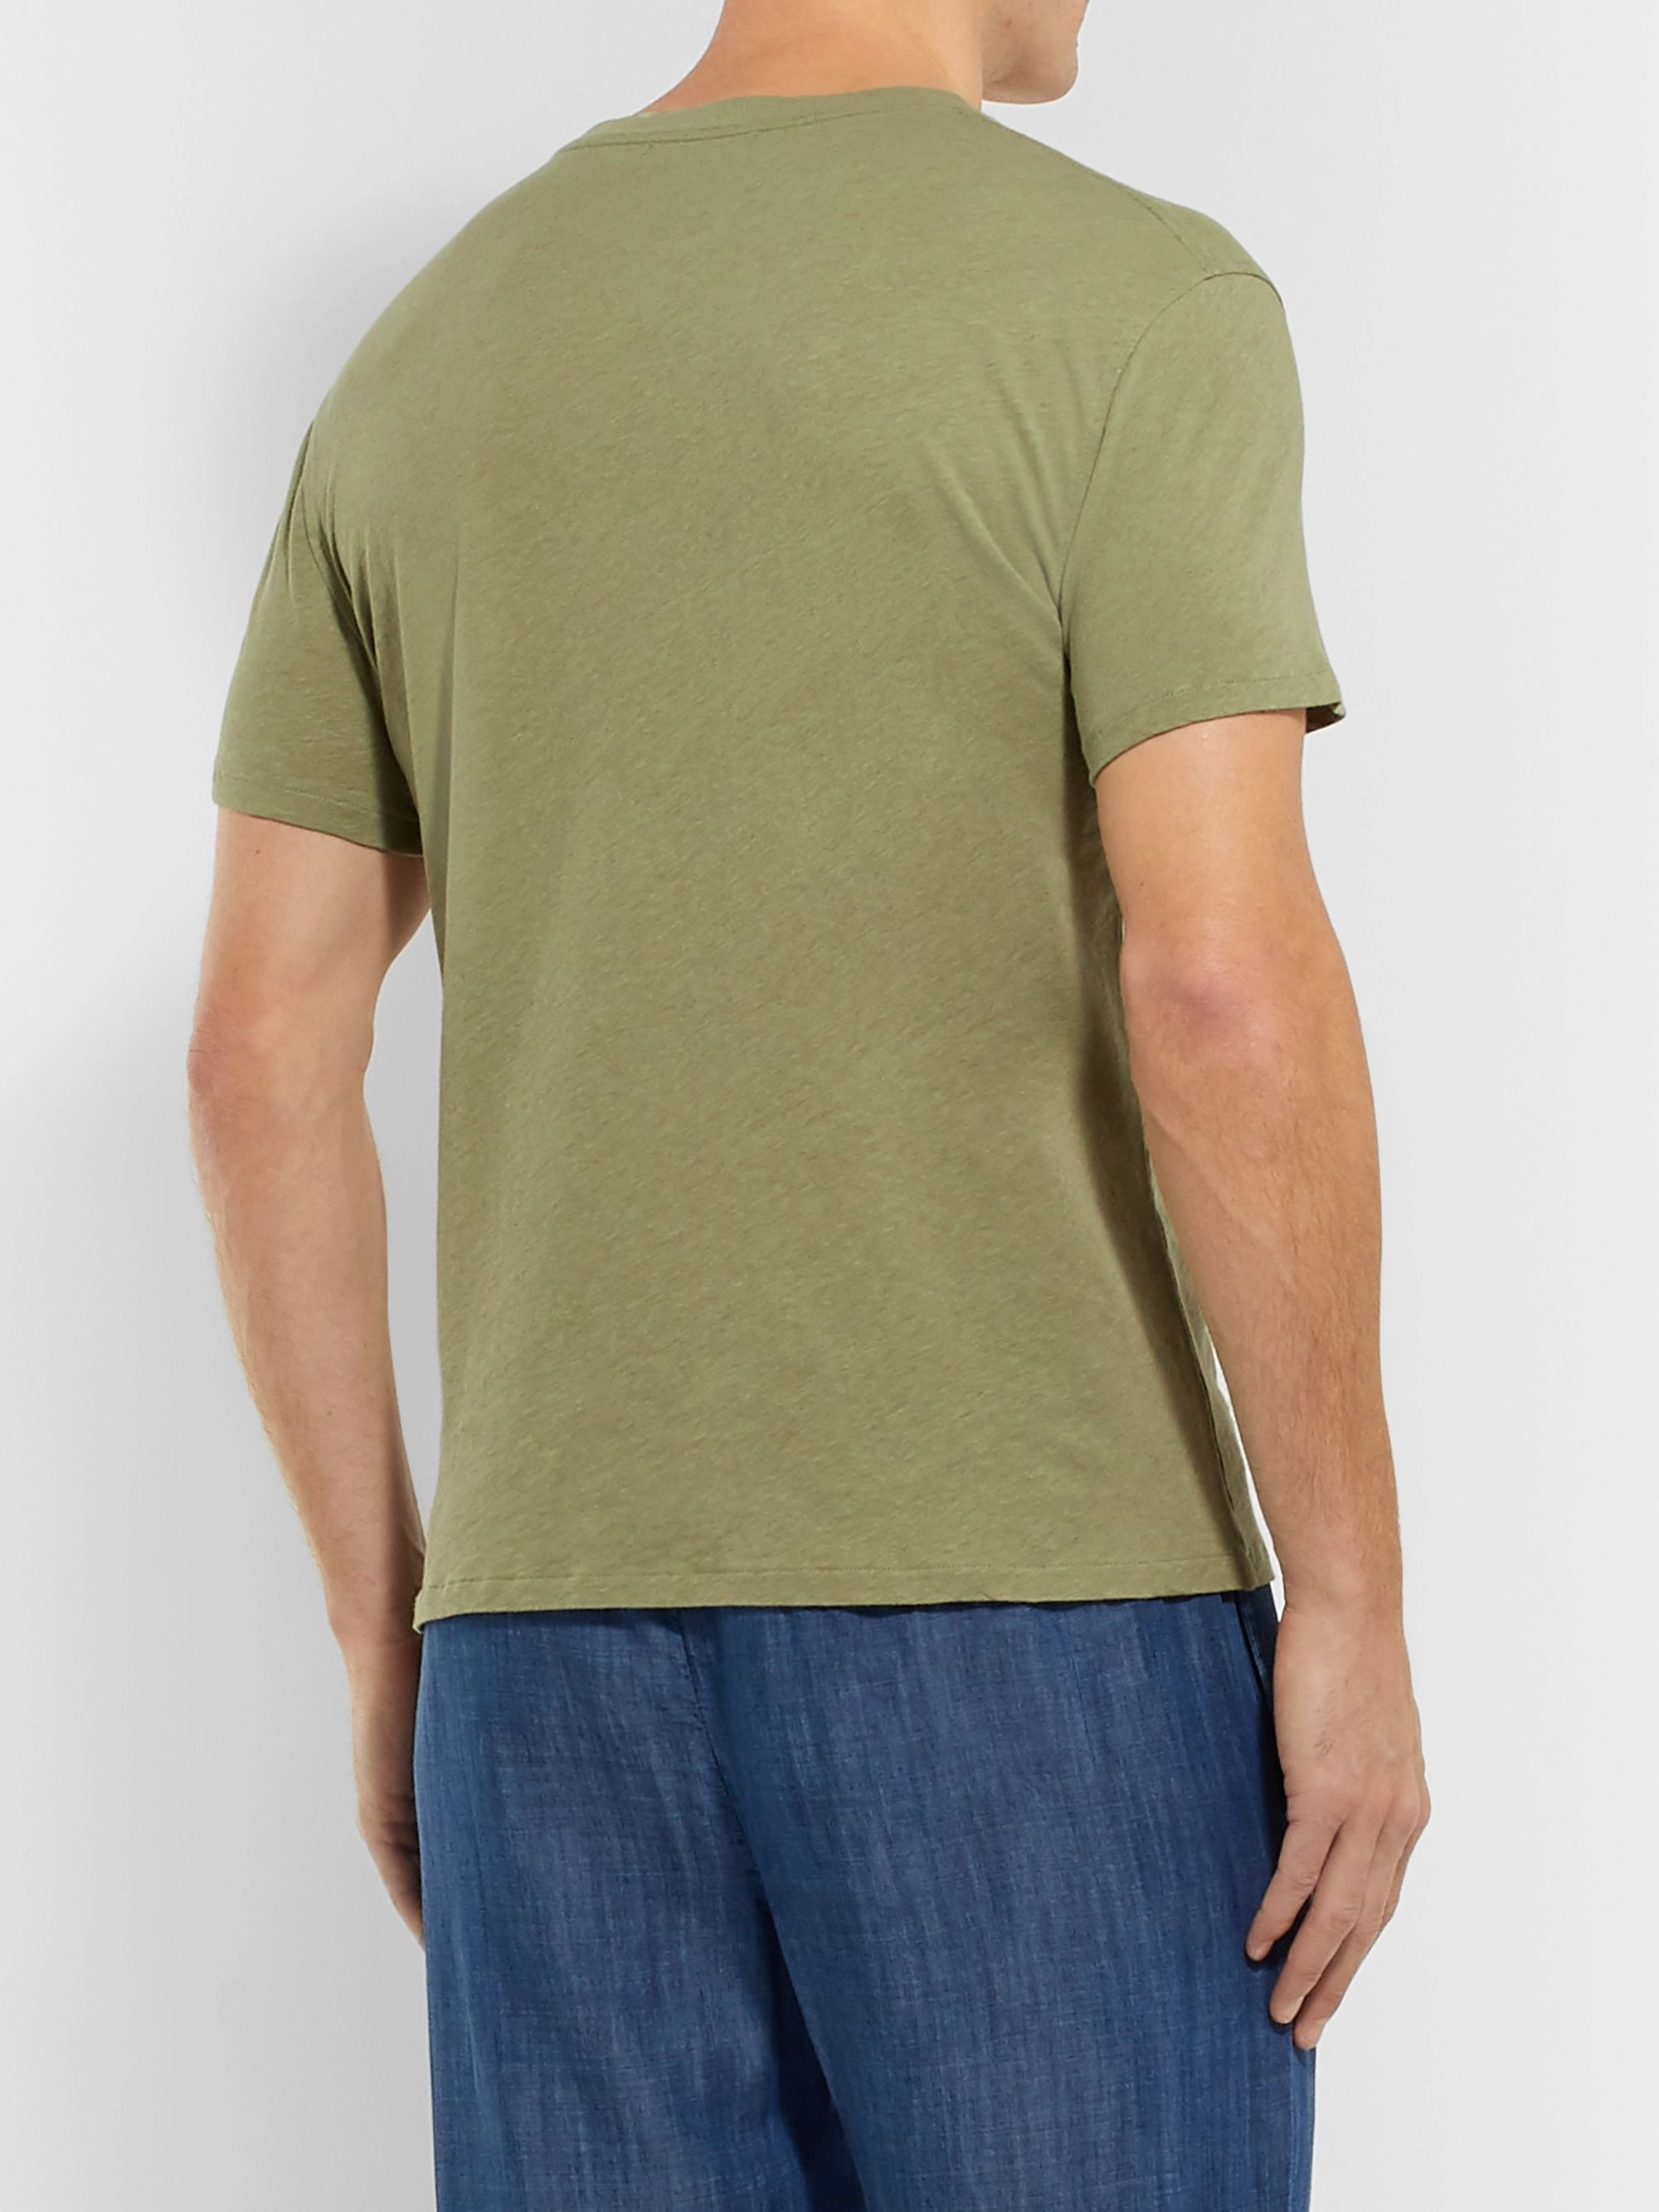 Frescobol Carioca Mazola Slub Cotton and Linen-Blend Jersey T-Shirt